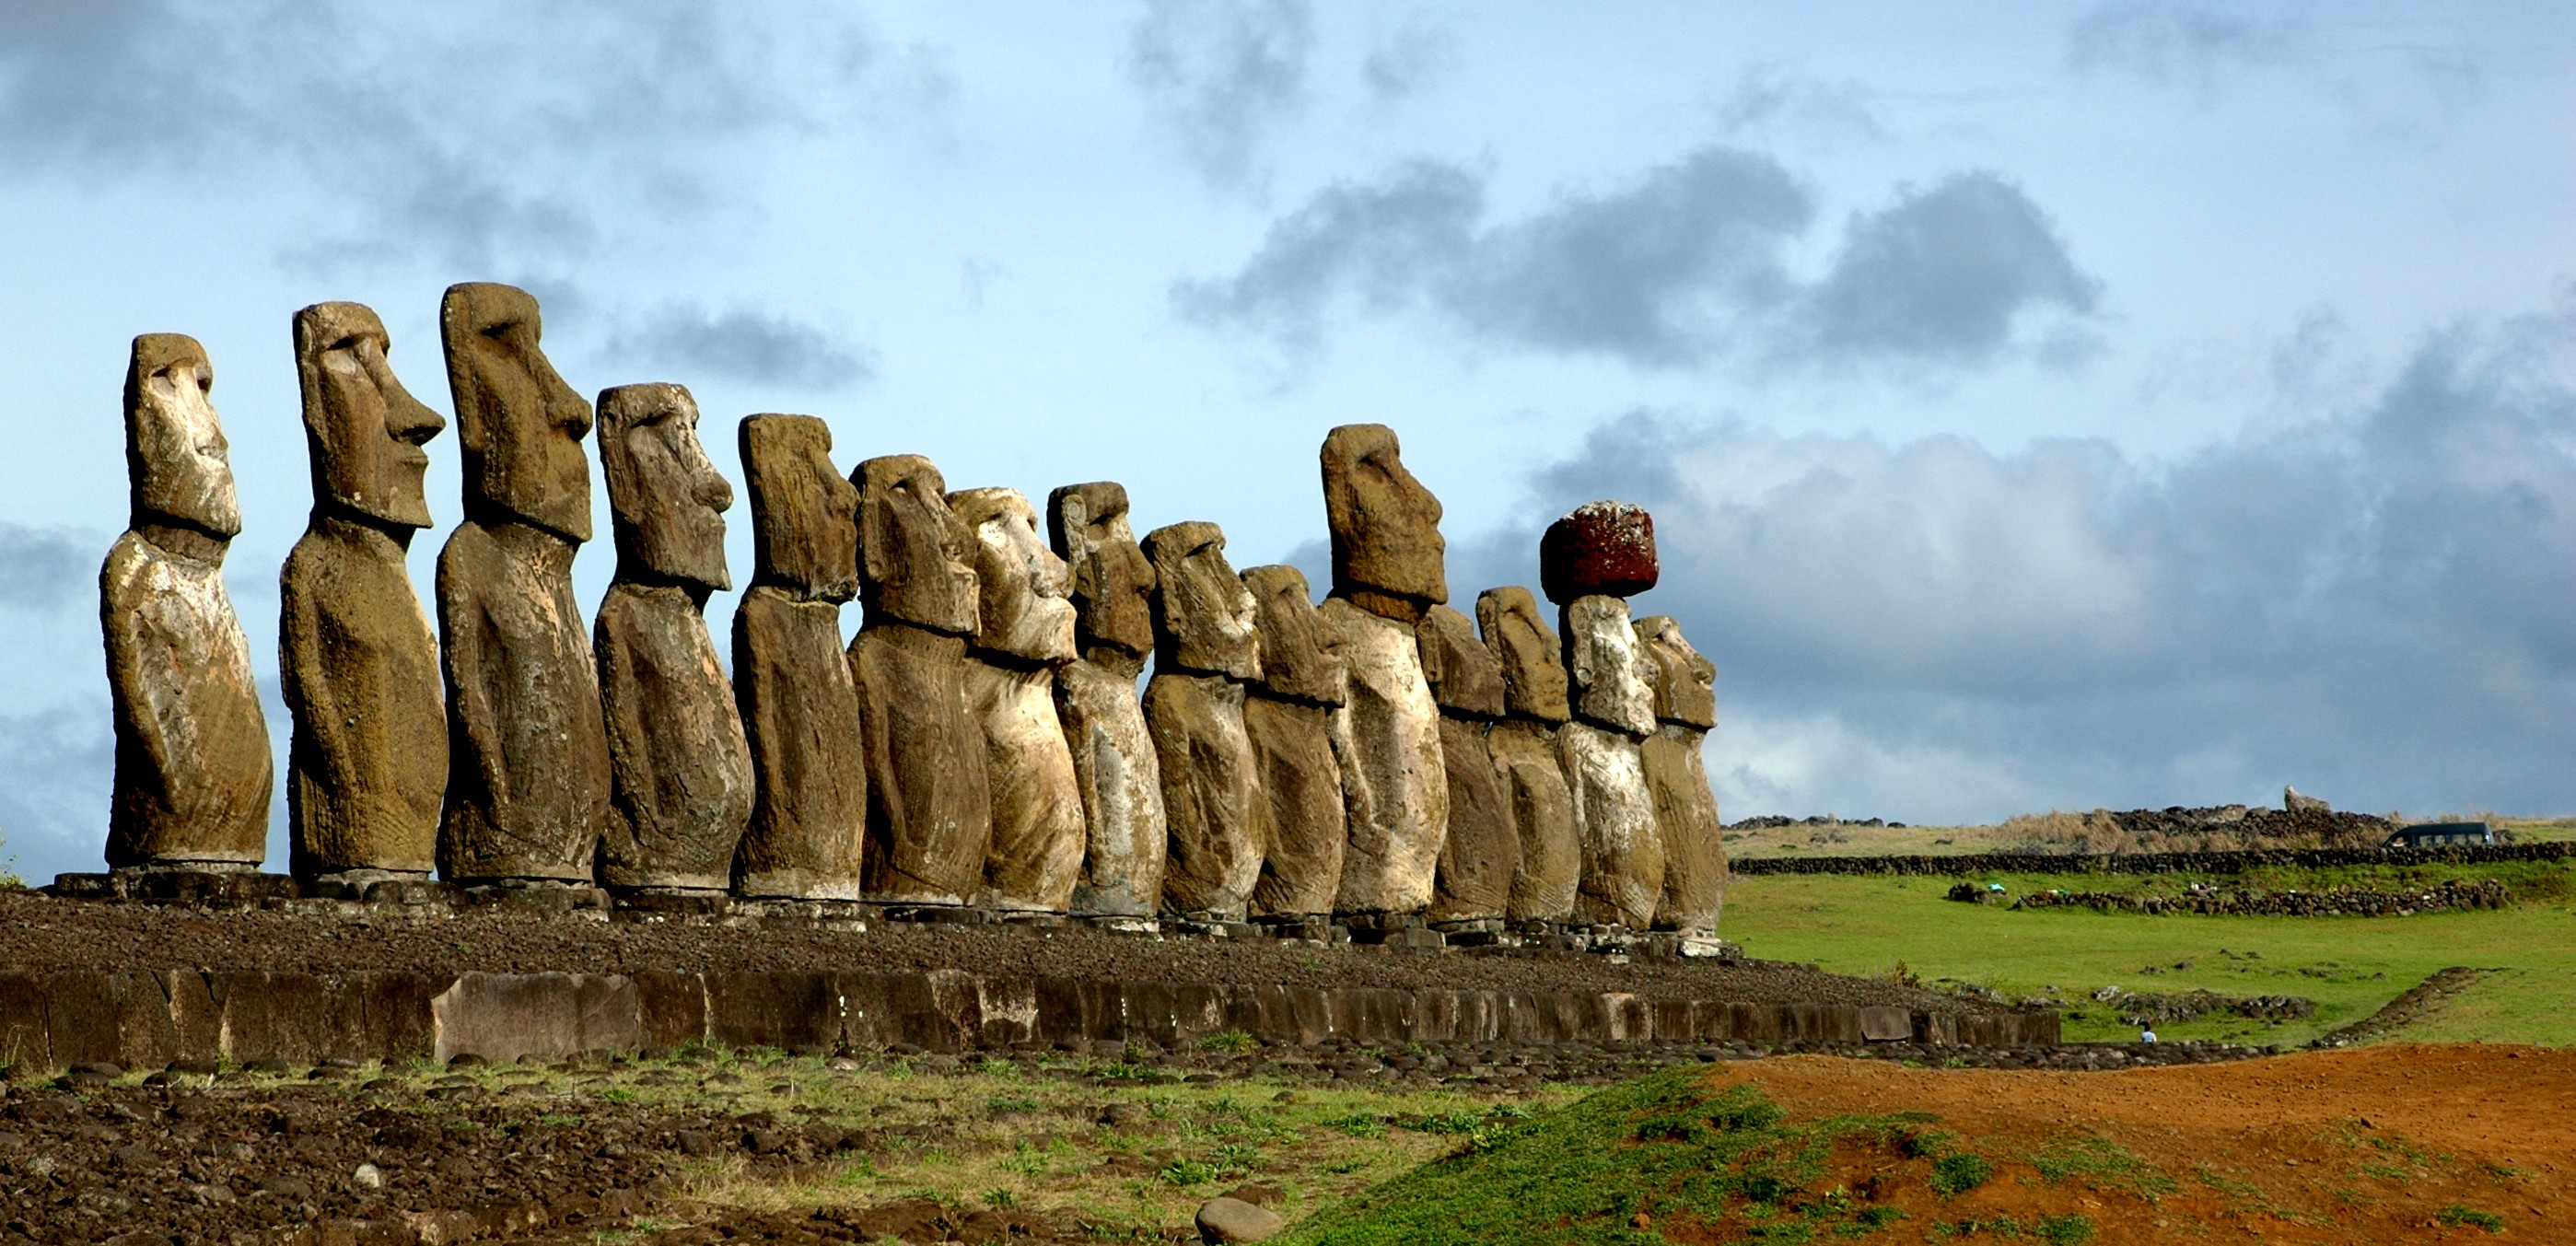 A Journey to The End of The Earth: Life on Rapa Nui